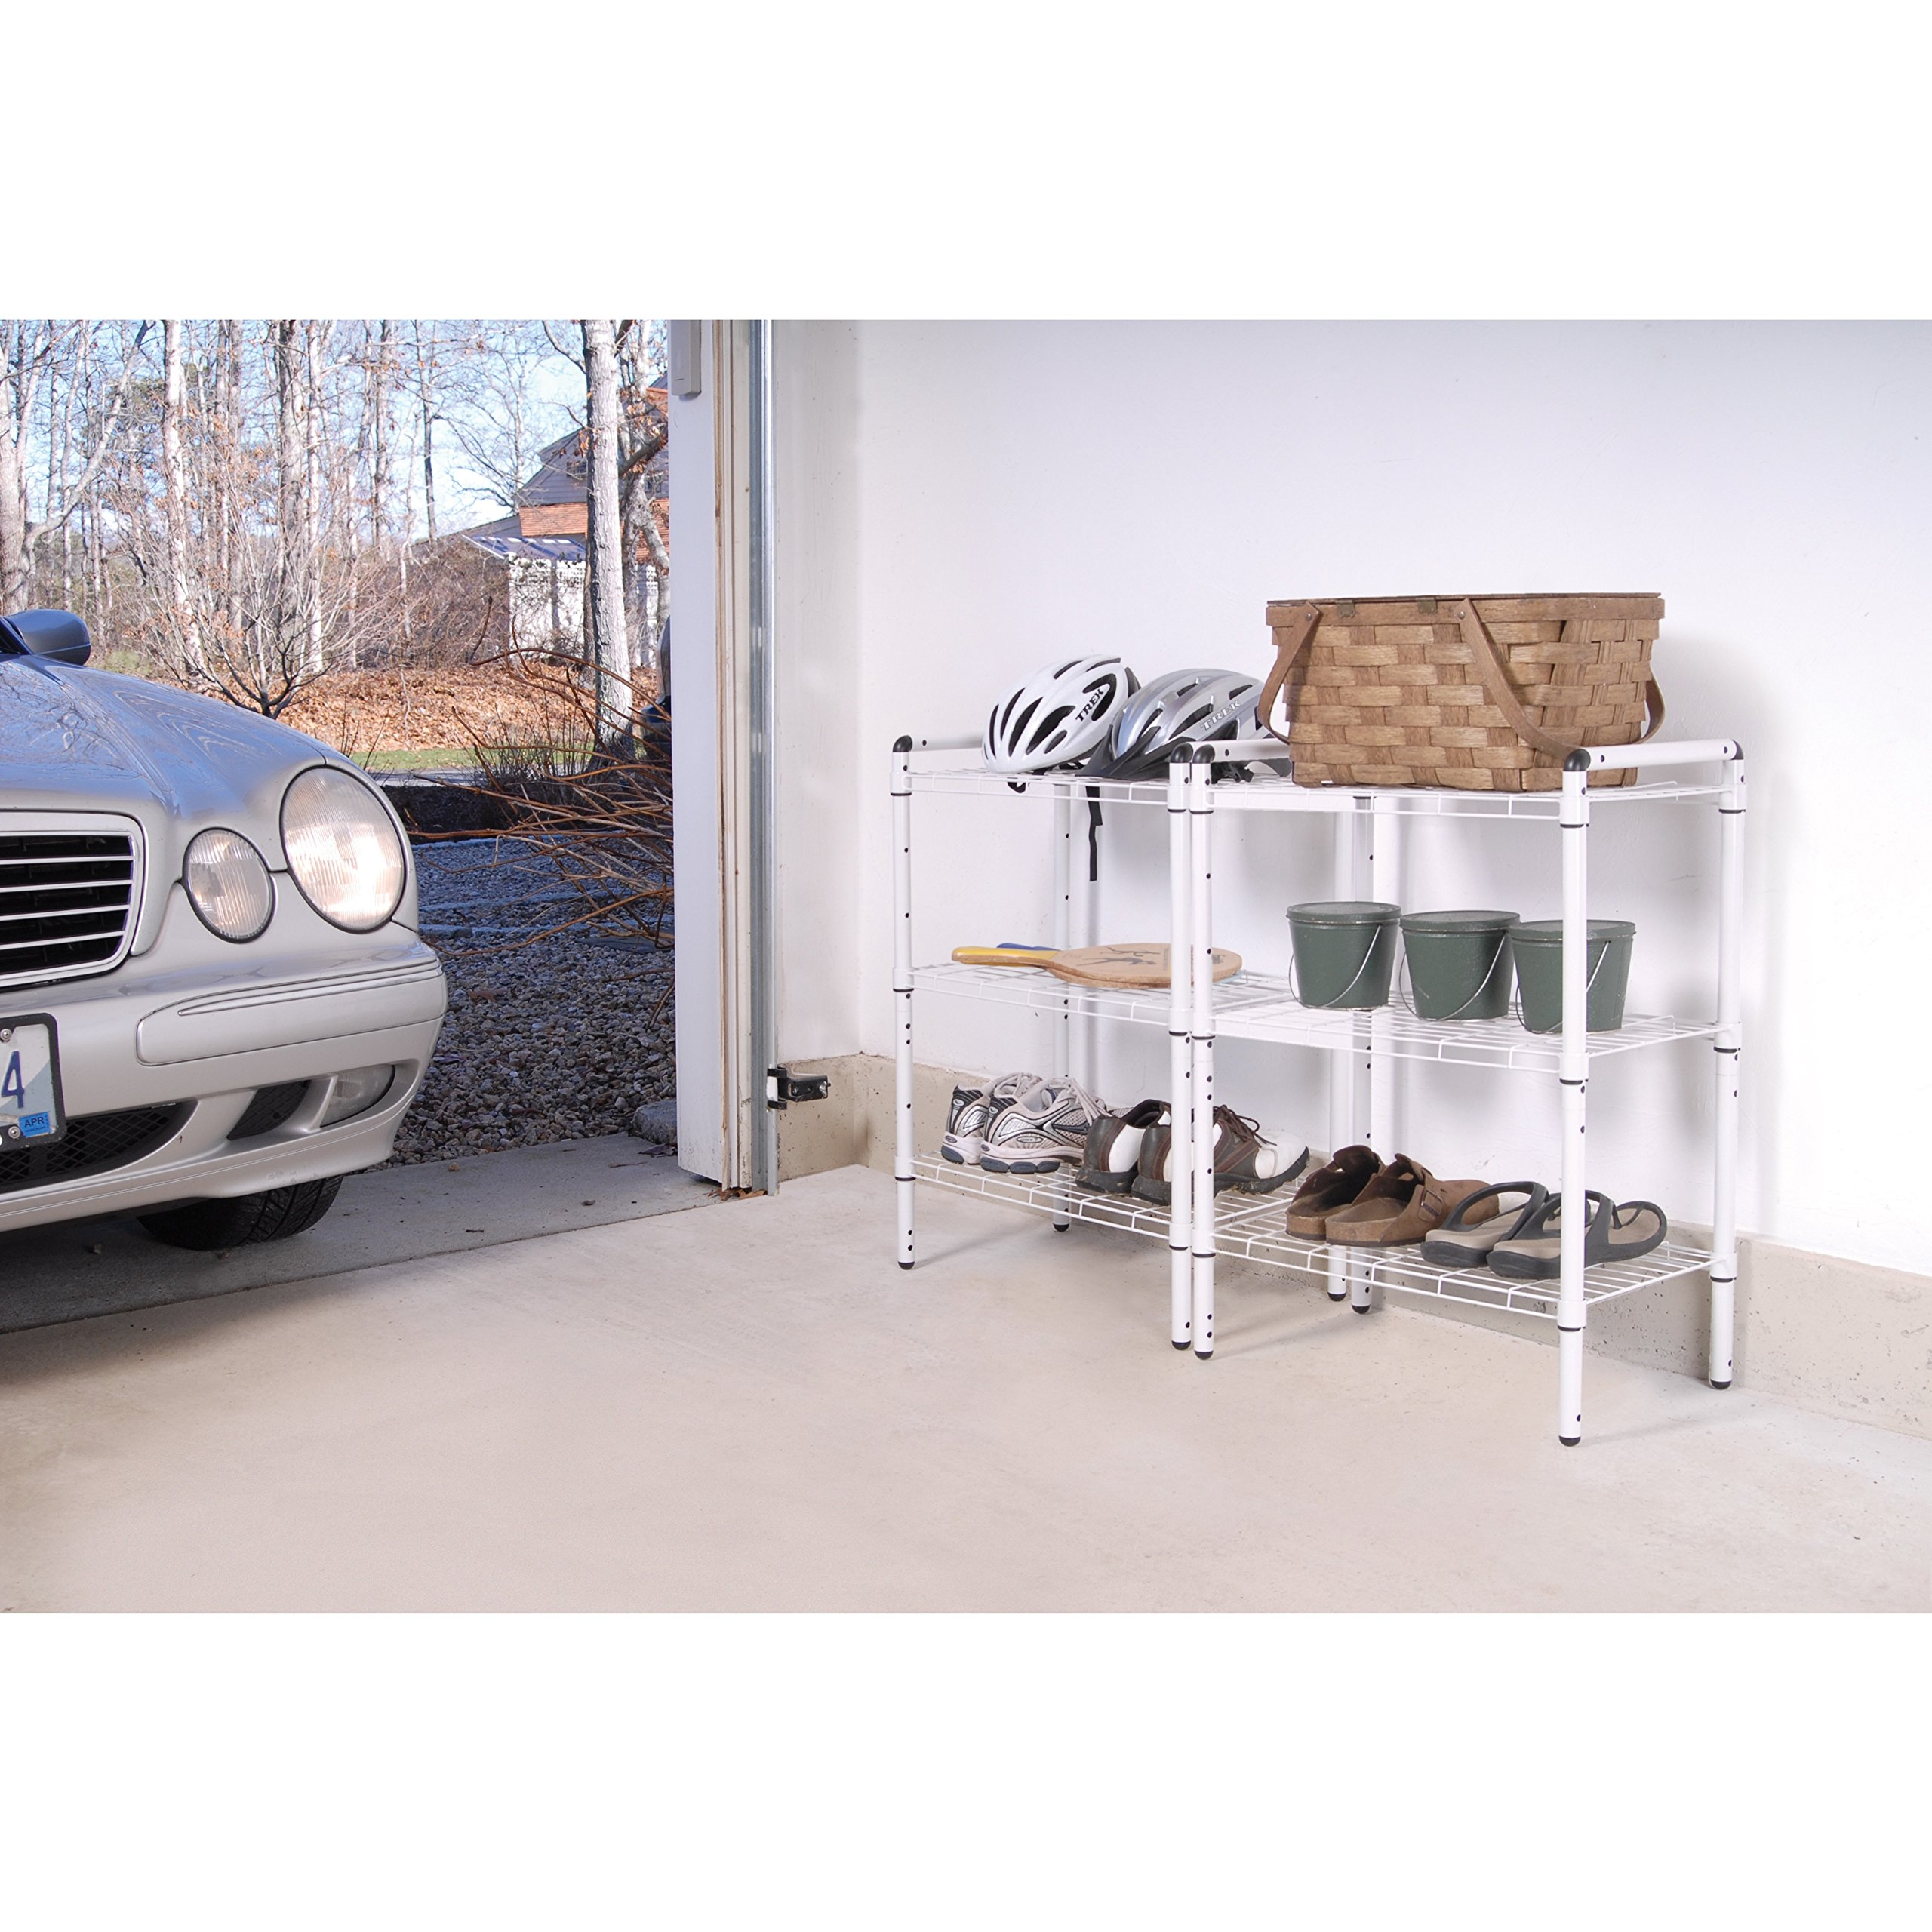 The Art of Storage White Steel 3-tier Quick Rack (Set of 2) by The Art of Storage (Image #1)